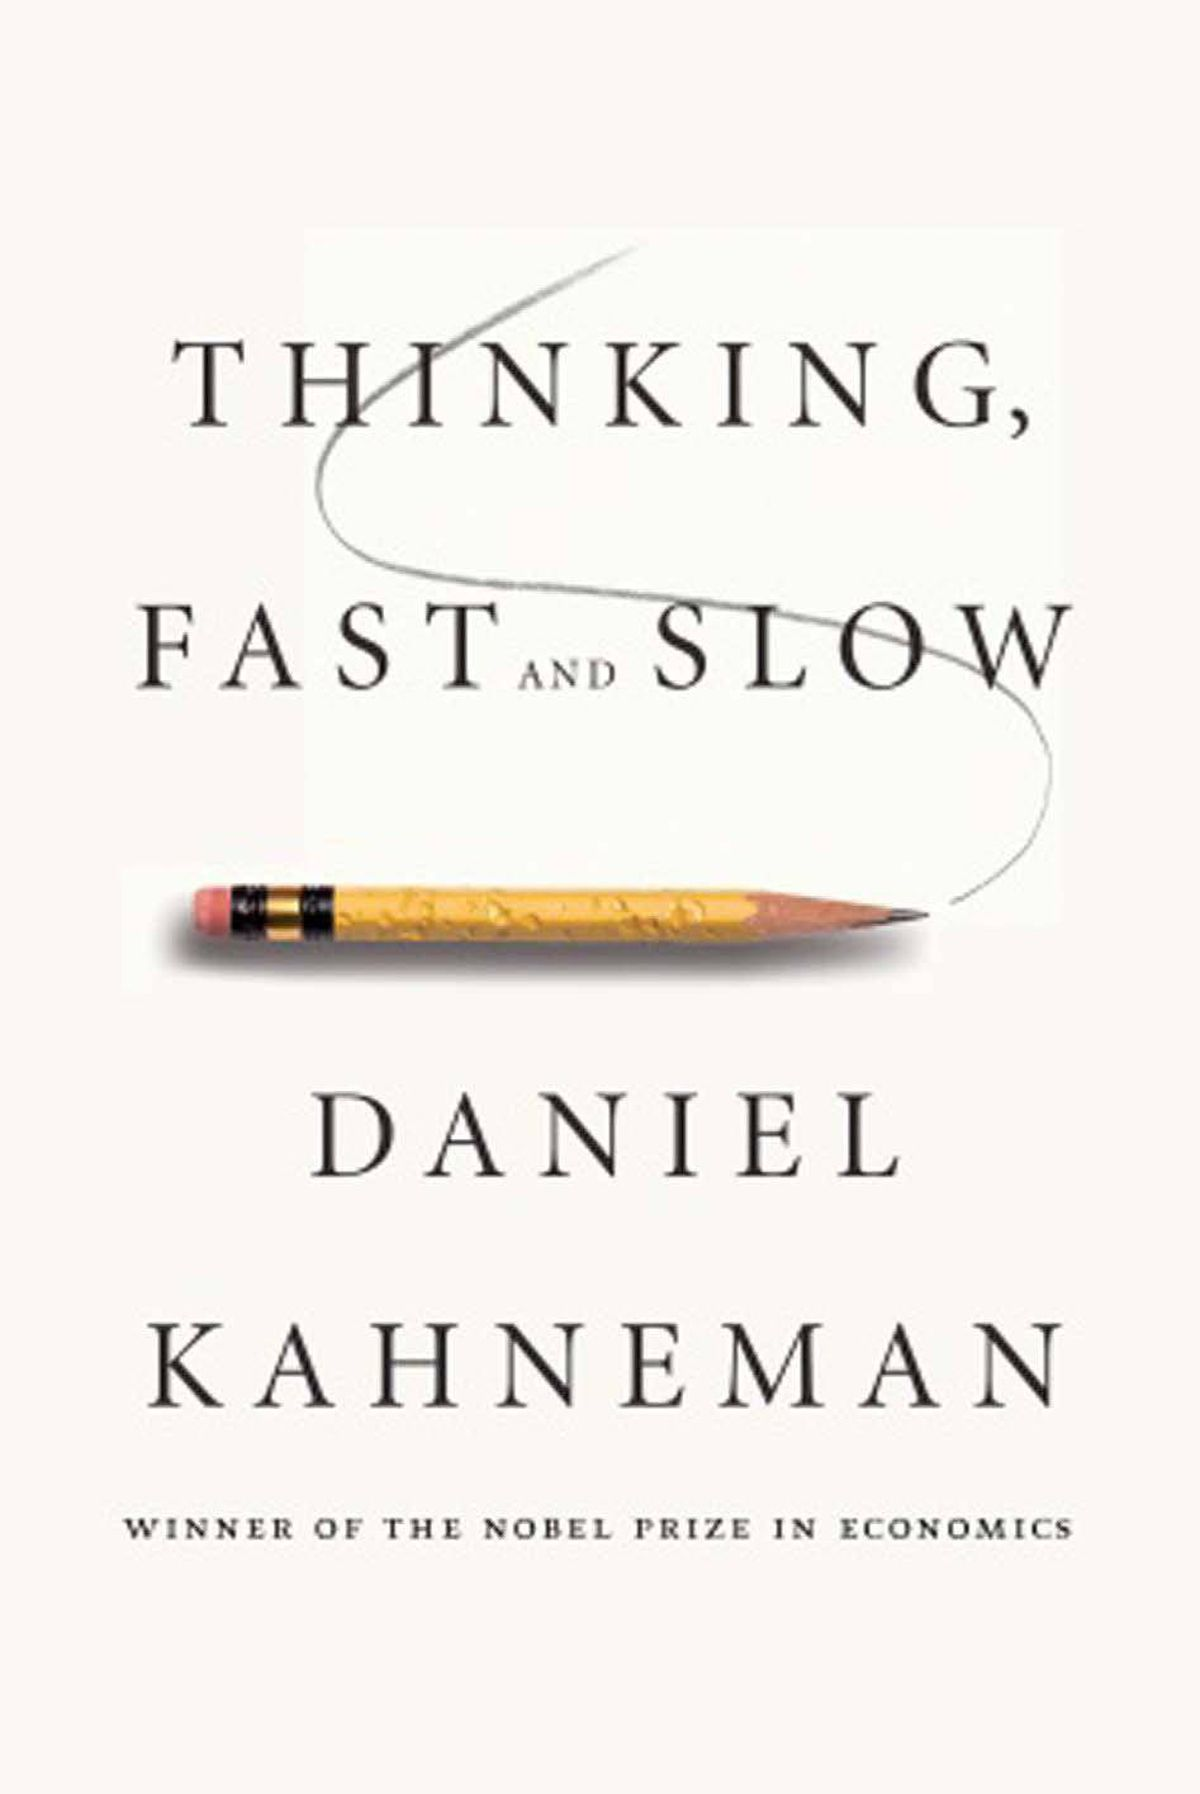 THINKING, FAST AND SLOW By Daniel Kahneman (Doubleday Canada) Economic rationality, psychologist Kahneman argues in his brilliant work on how we make choices, is all about coherence and logical consistency. This is a magisterial work, stunning in its ambition, infused with knowledge, laced with wisdom, informed by modesty and deeply humane. If you can read only one book this year, read this one. – Janice Gross Stein